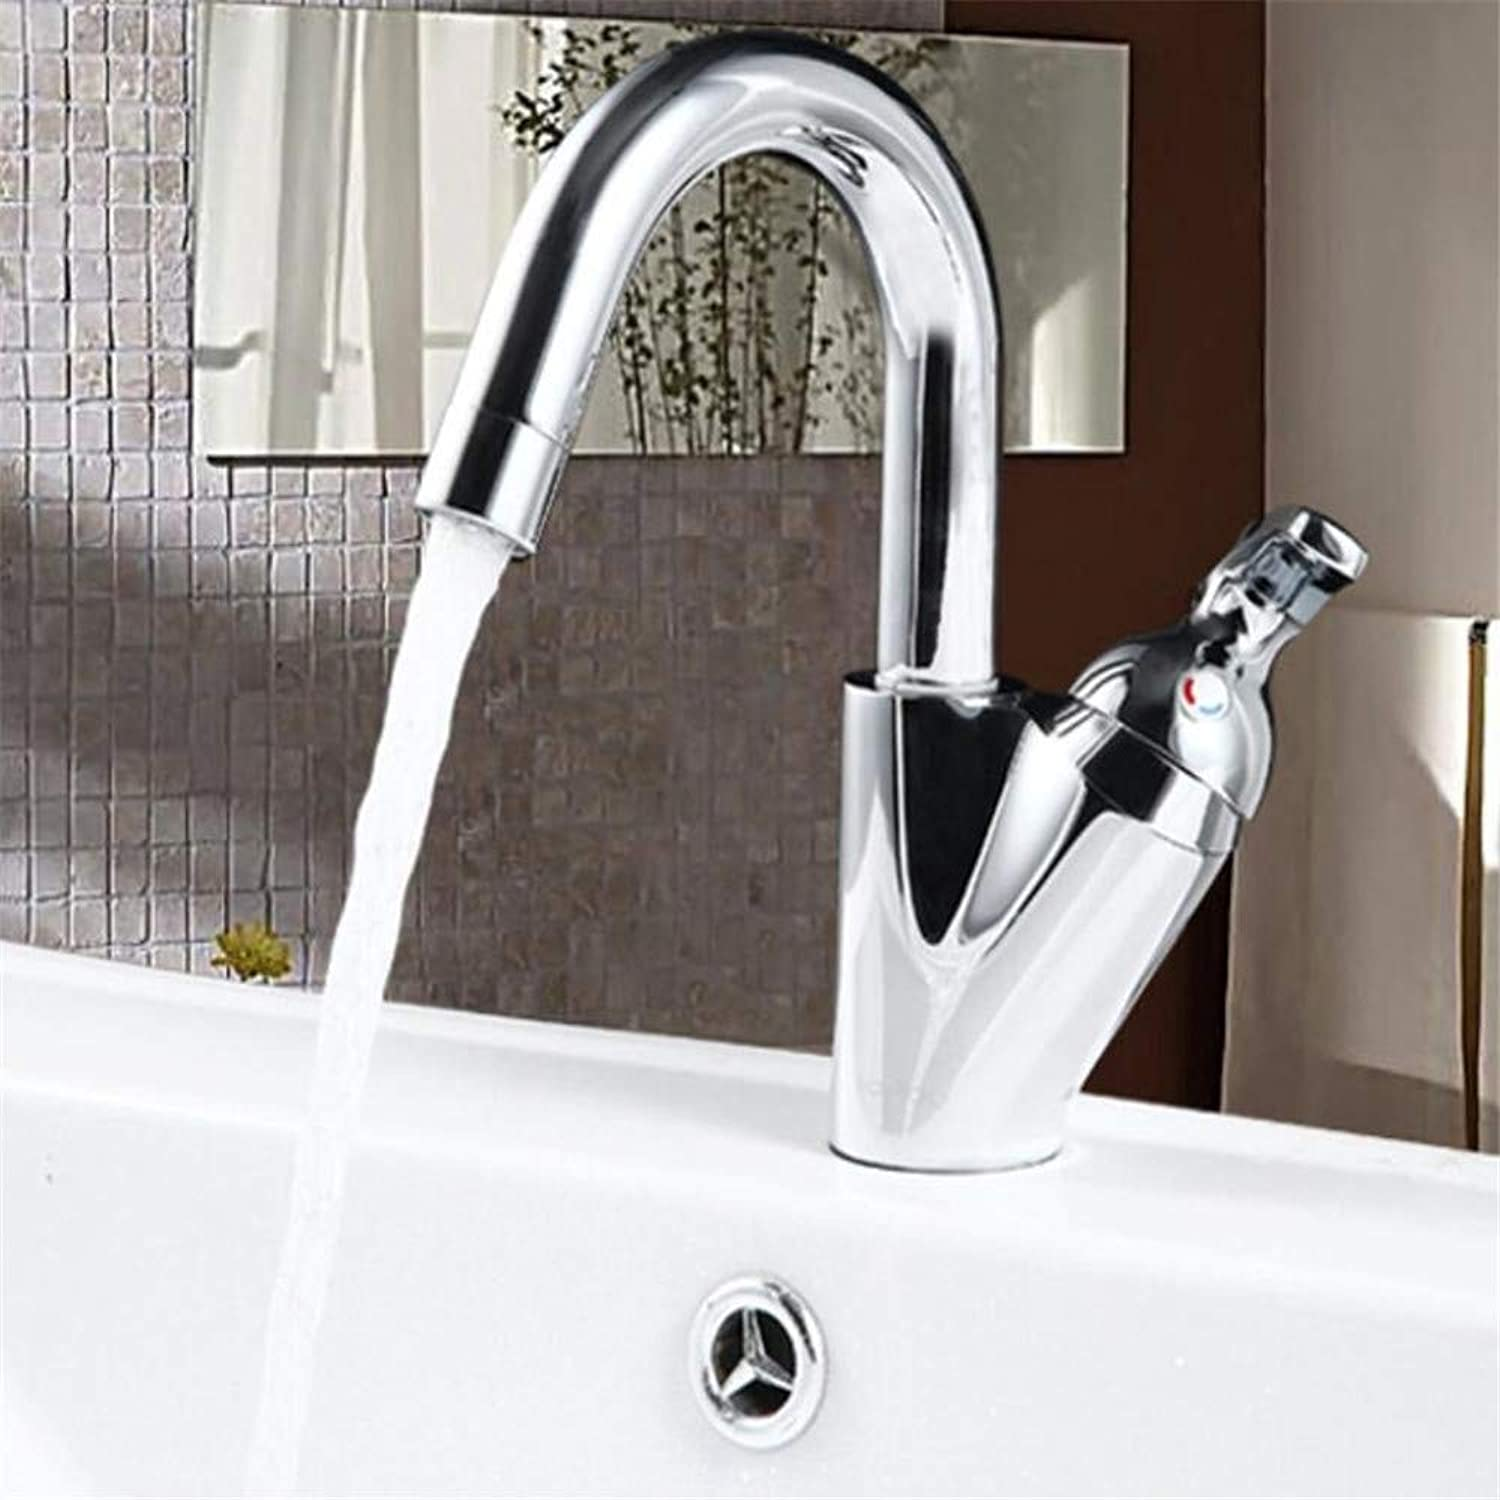 Faucetwashbasin Basin Hot and Cold Faucet redatable Faucet